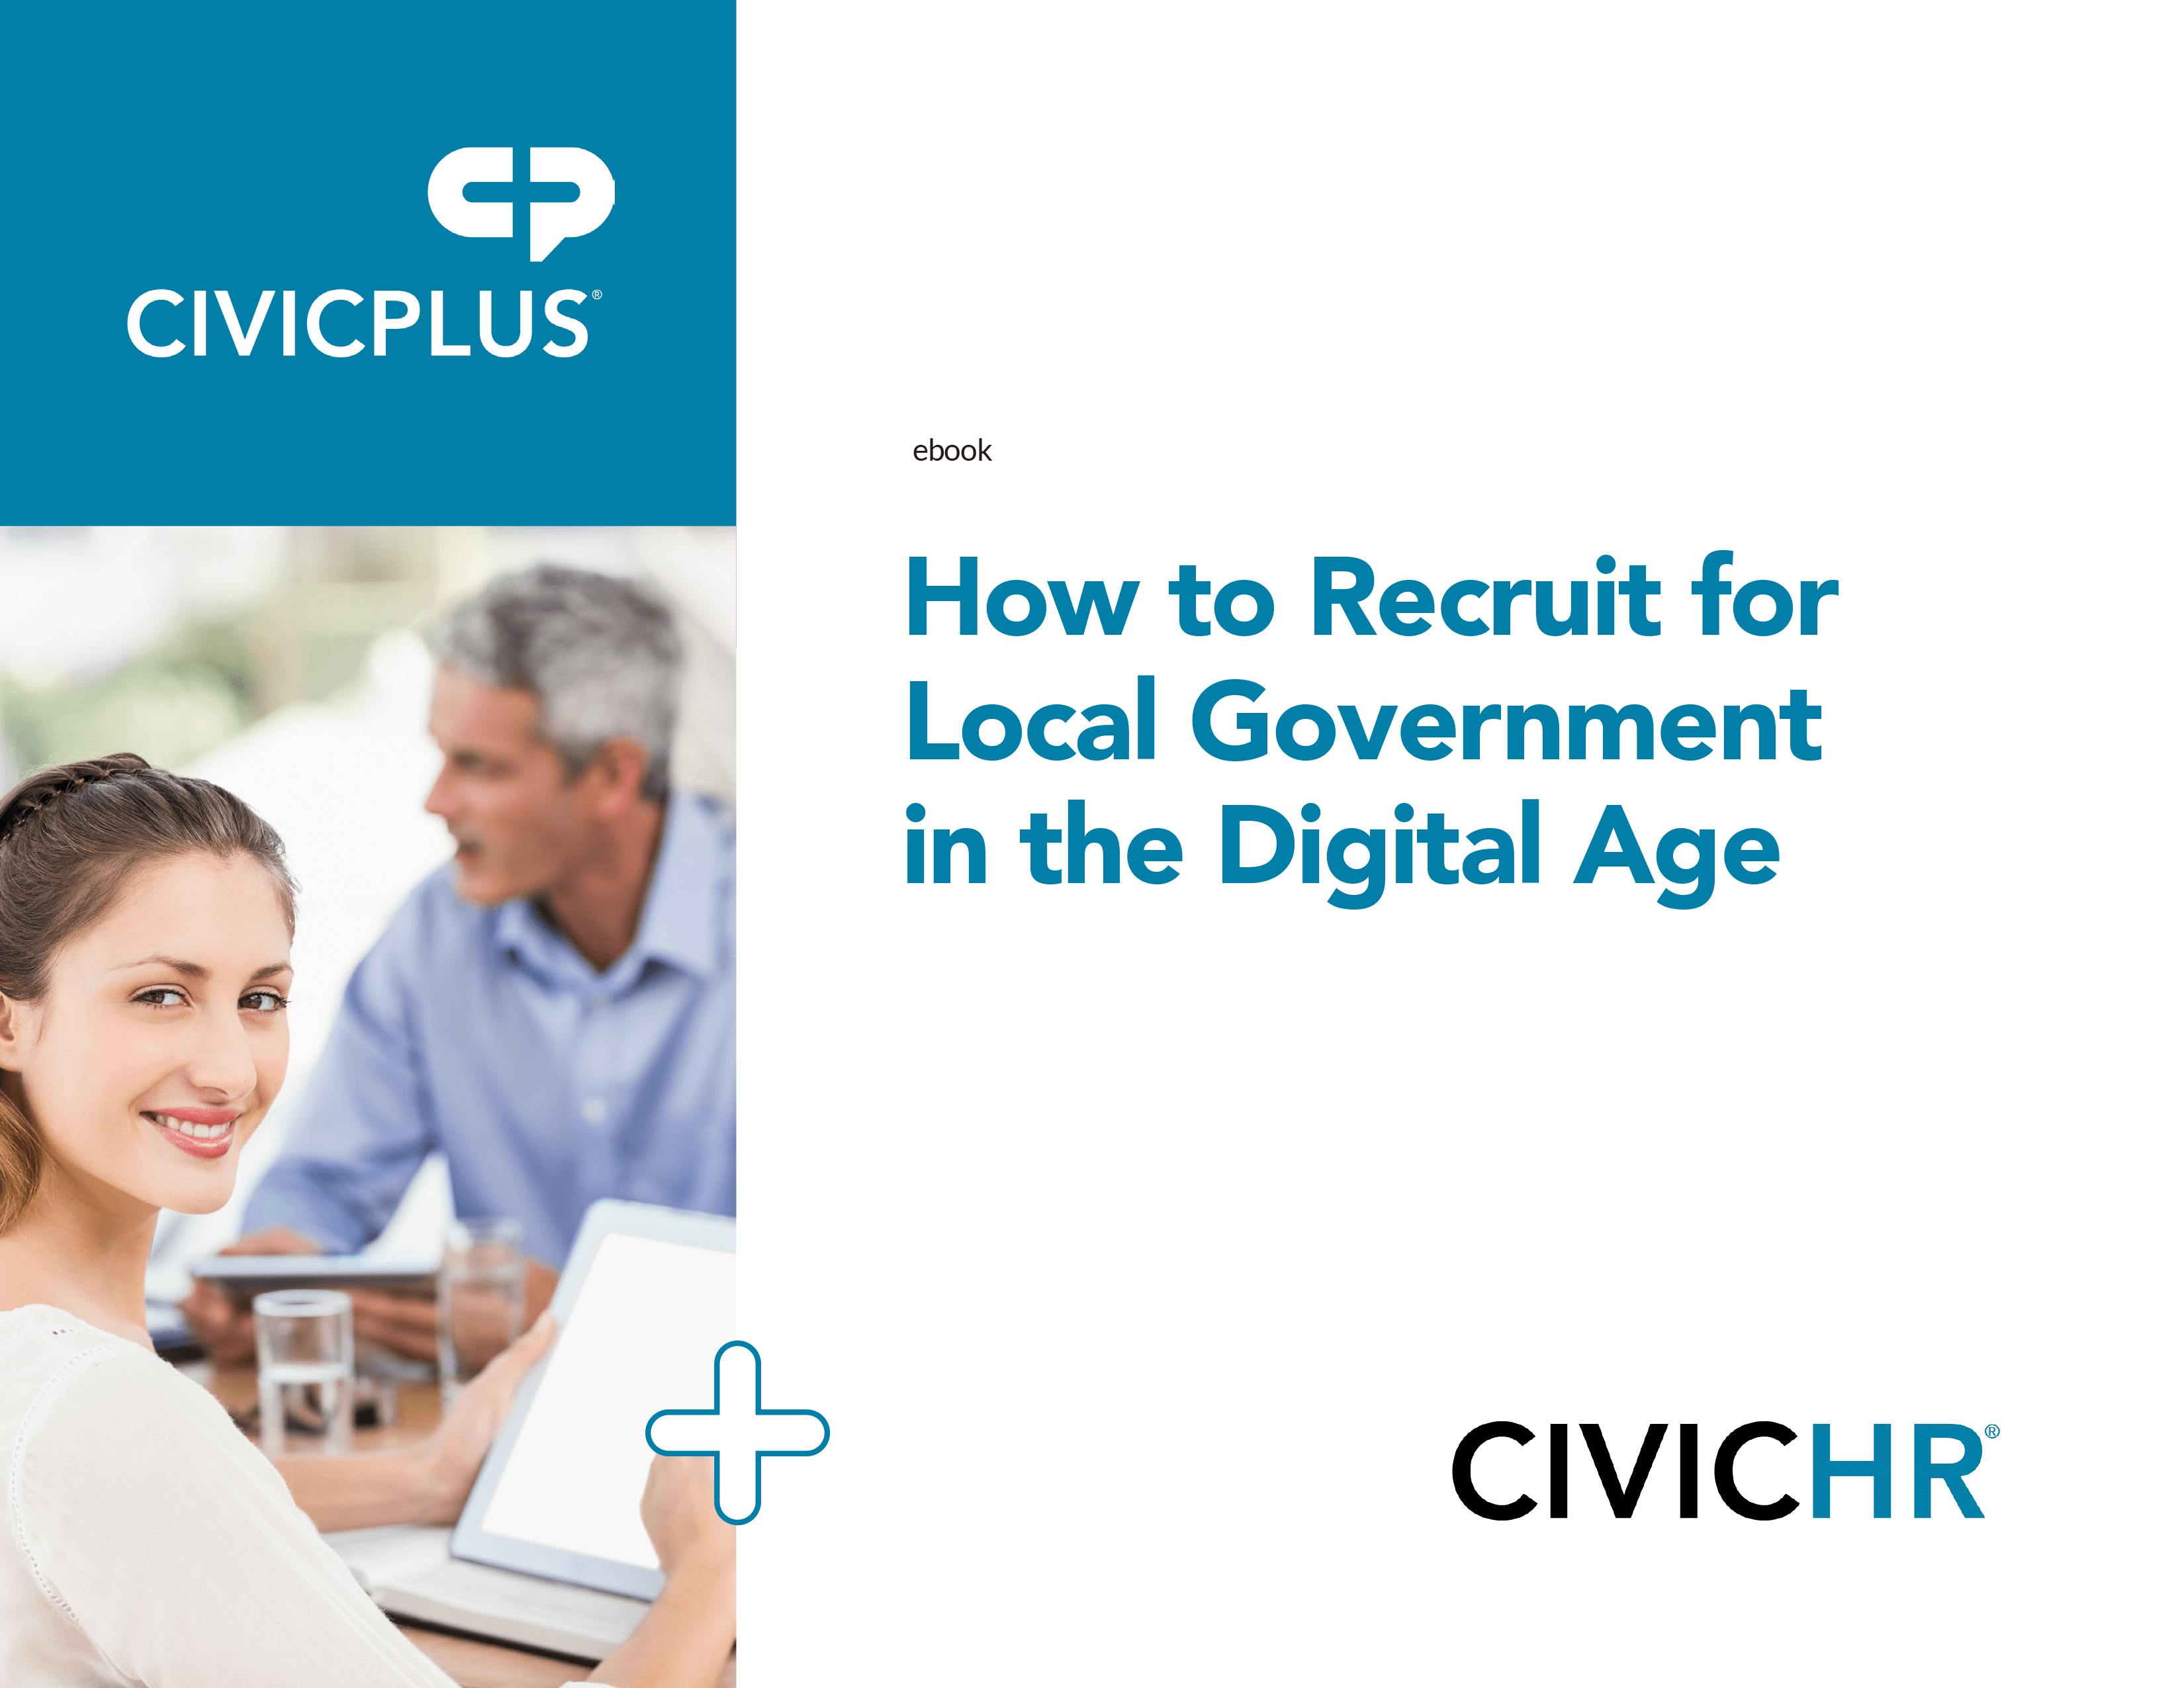 https://cdn2.hubspot.net/hubfs/158743/eBook-How-to-Recruit-for-Local-Government-in-the-Digital-Age.png